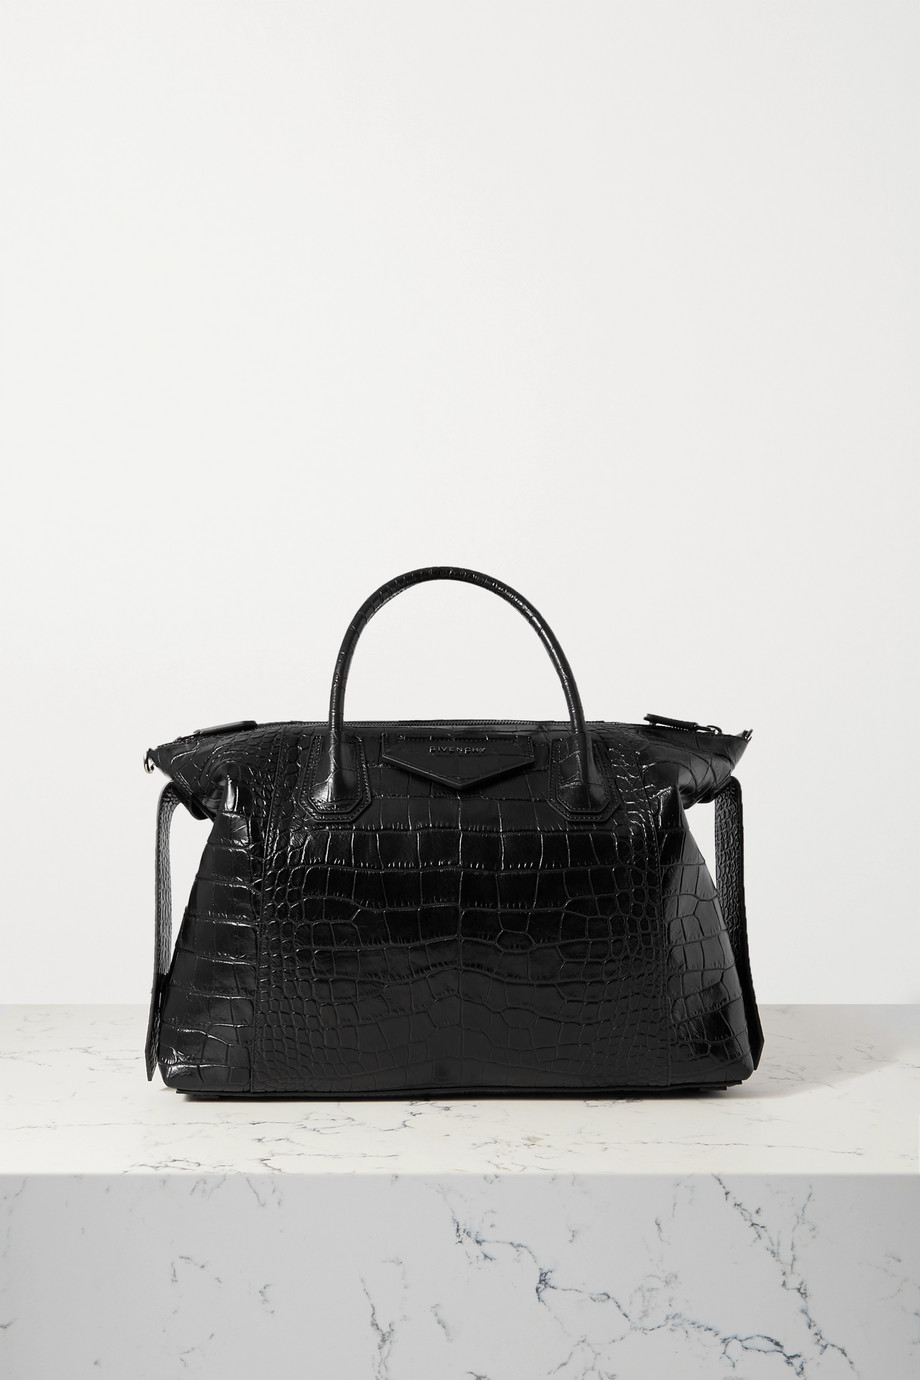 Givenchy Antigona Soft medium croc-effect leather tote